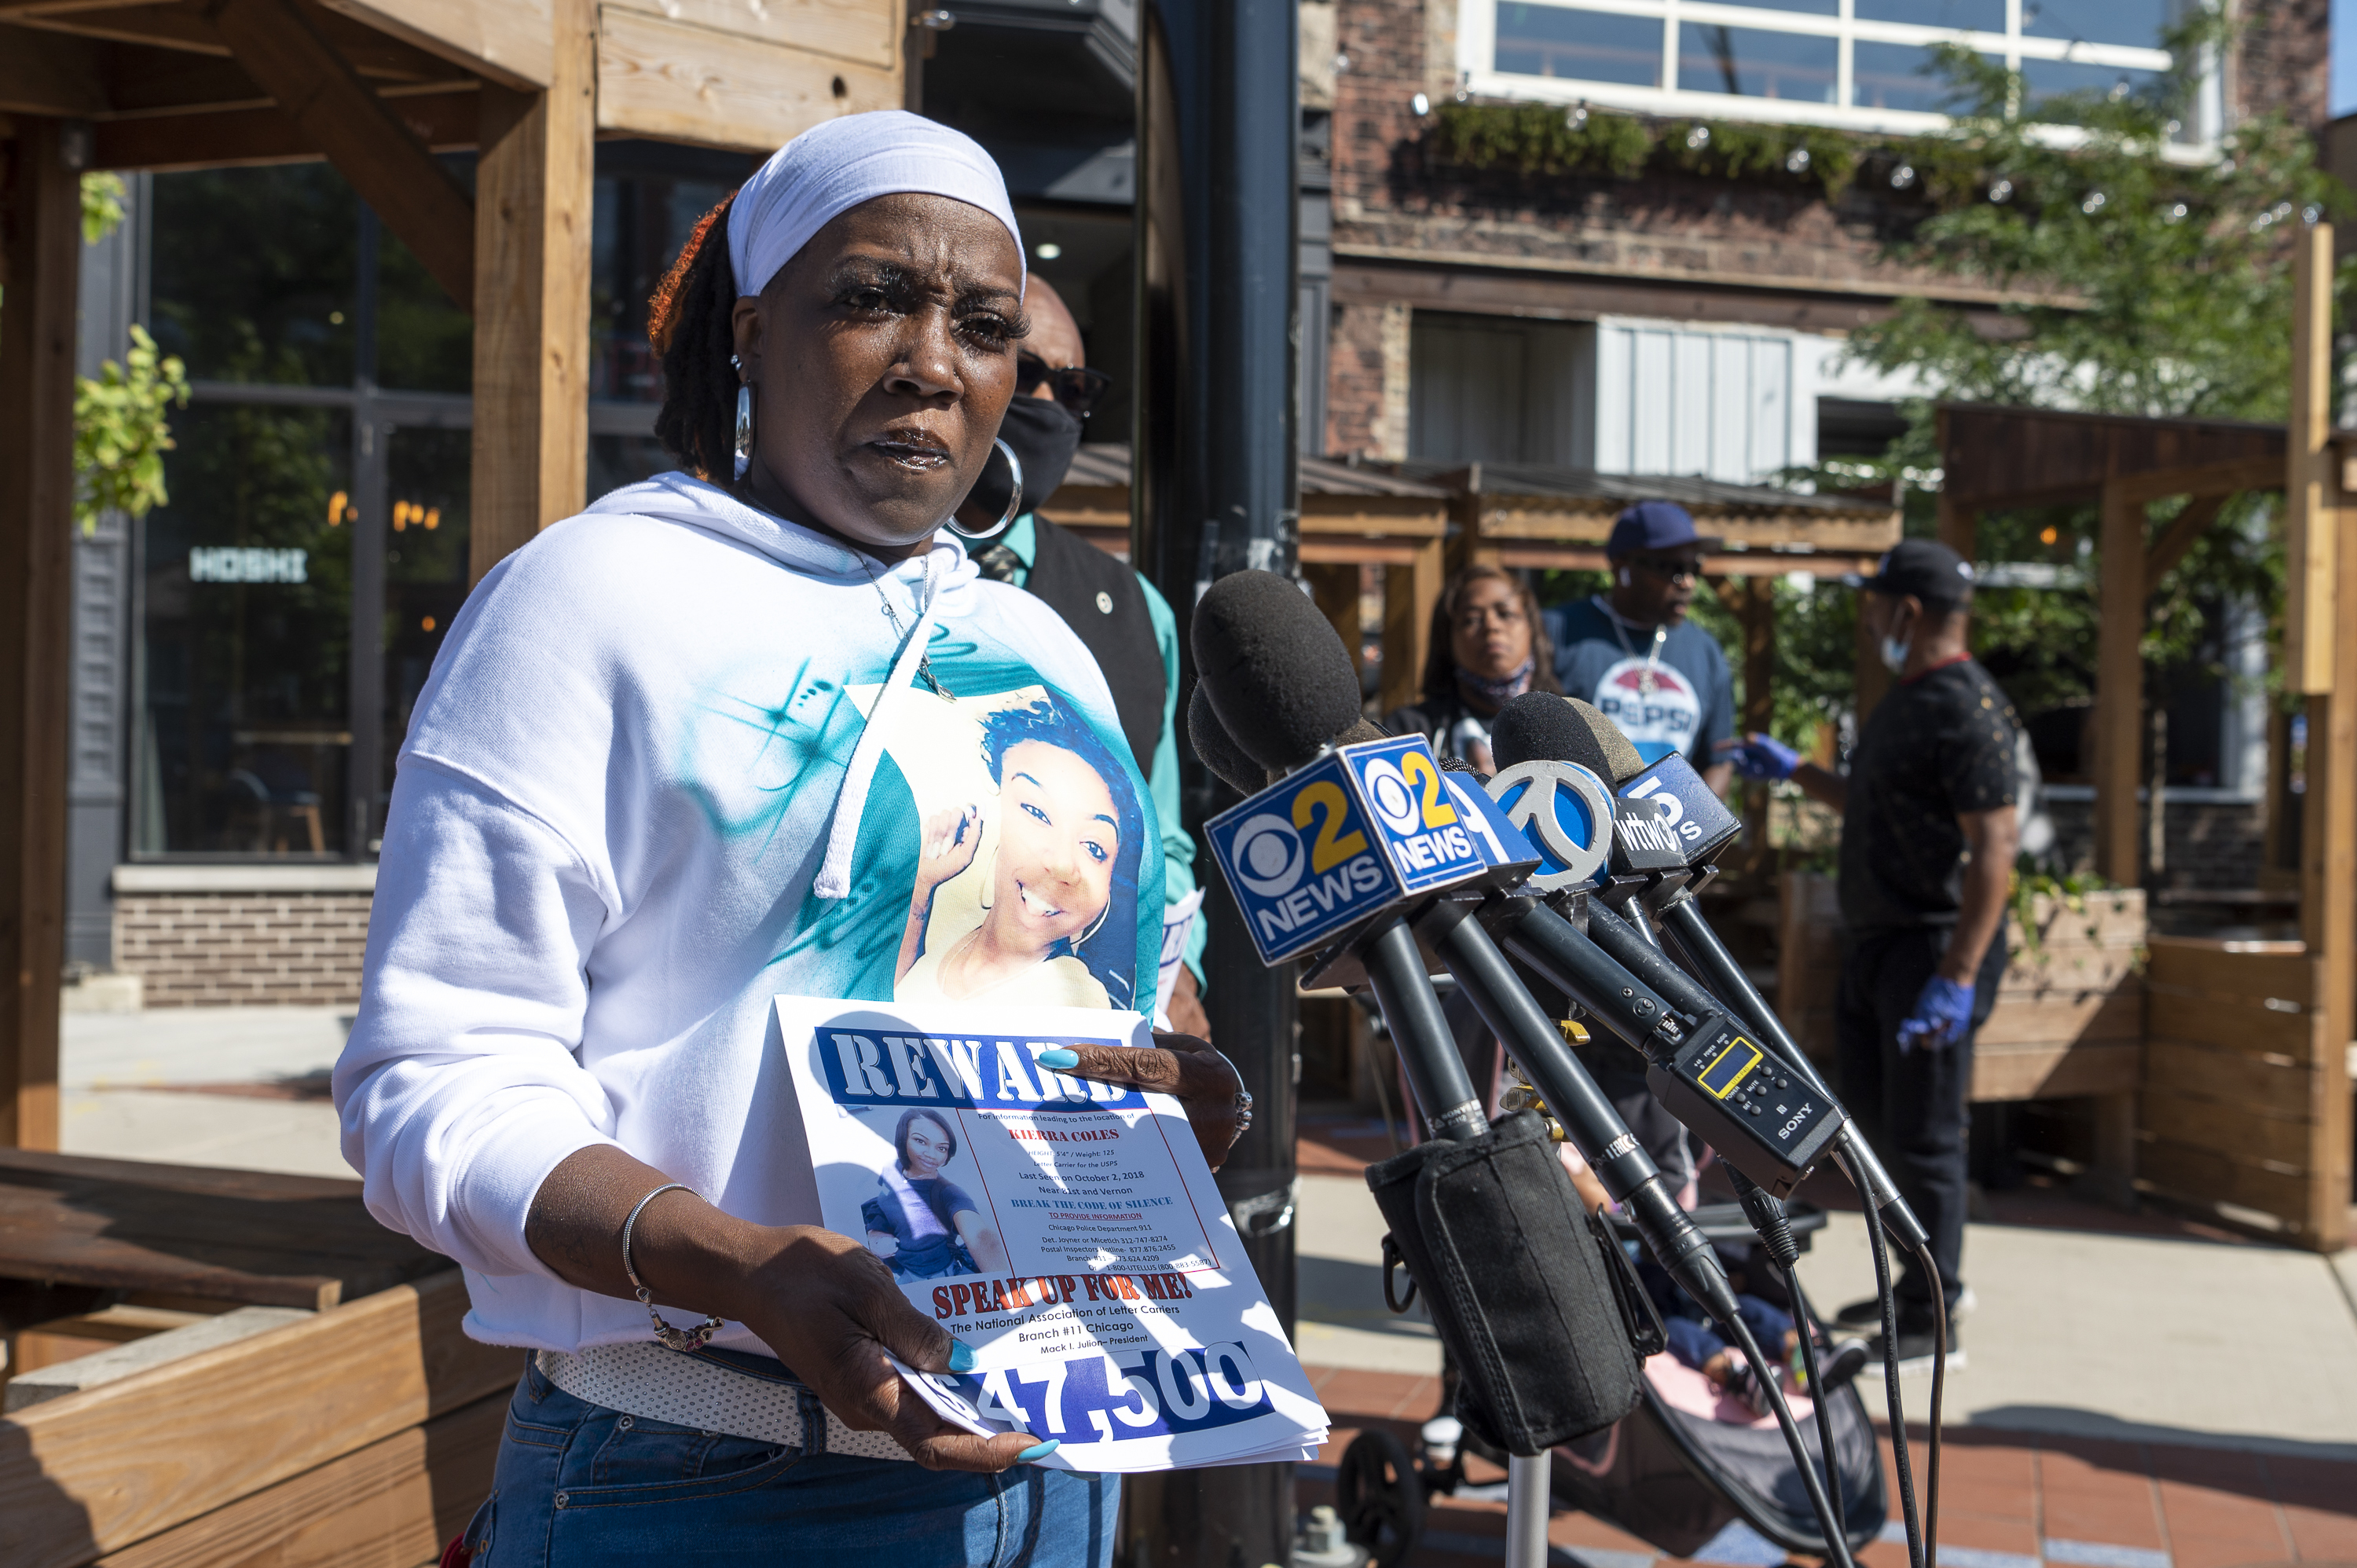 Karen Phillips, mother of Kierra Coles, speaks to reporters, during a birthday party and press conference for Kierra, Friday, Sept. 24, 2021. Kierra Coles was last seen in 2018.